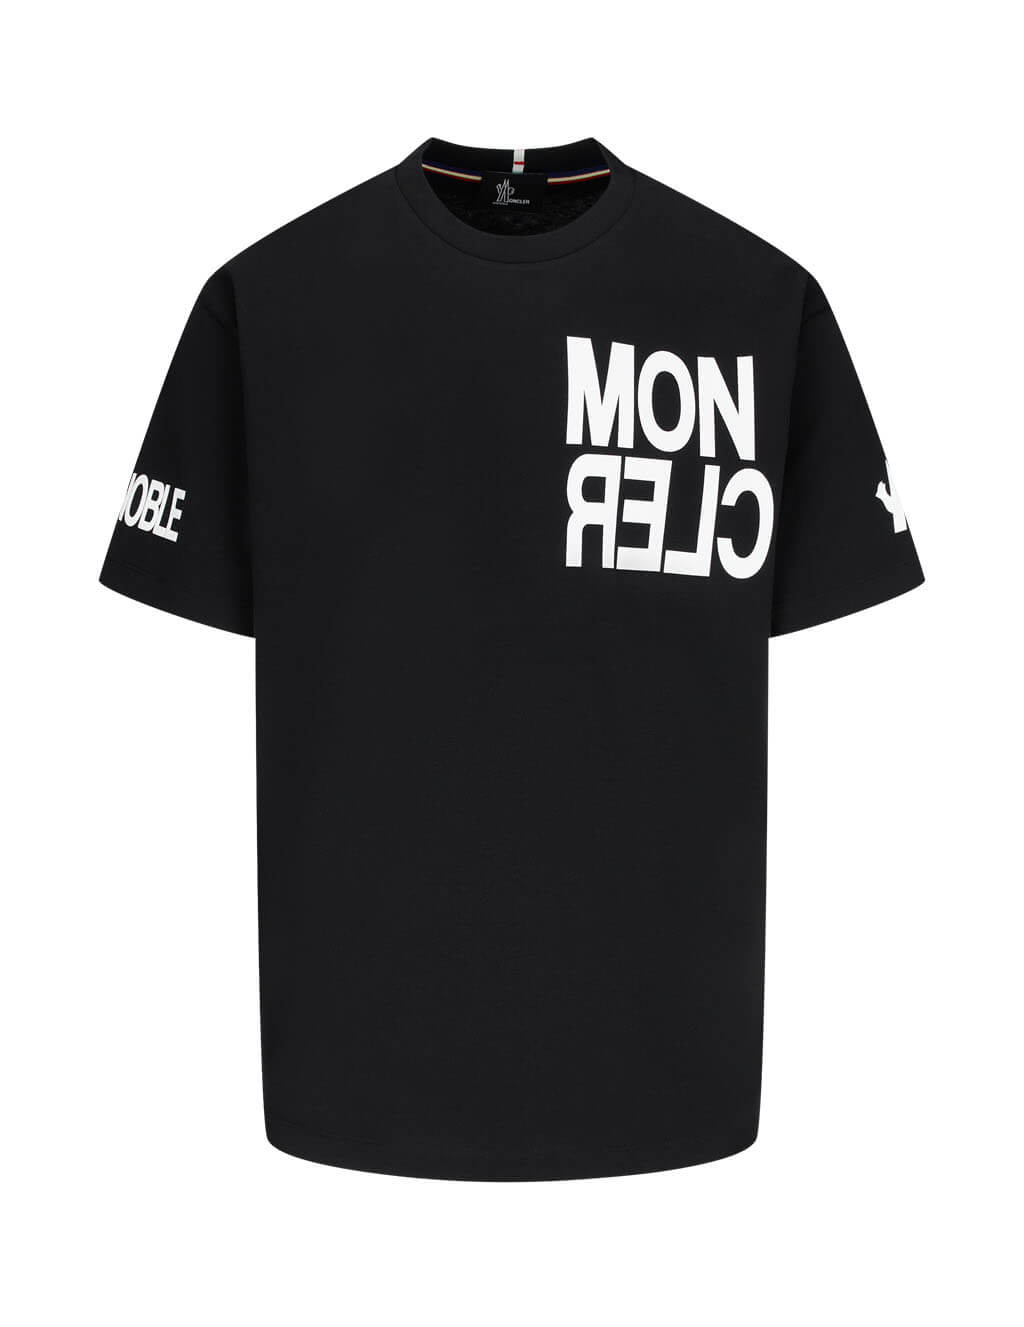 Men's Moncler Grenoble Hashtag Grenoble T-Shirt in Black - 0978C705208390T999